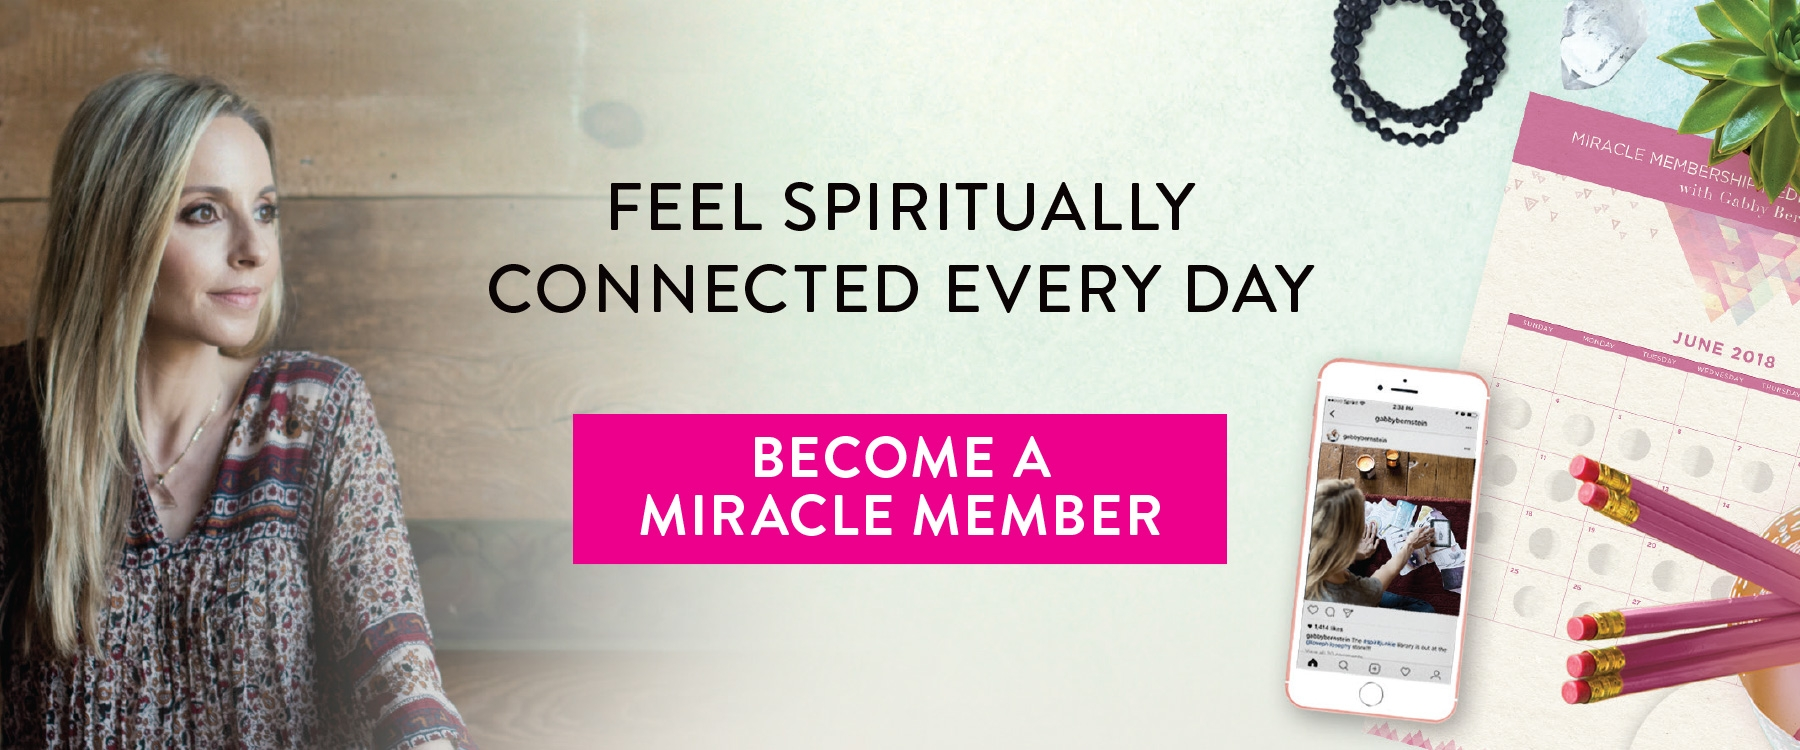 Miracle Membership by Gabby Bernstein | Feel spiritually connected every day!